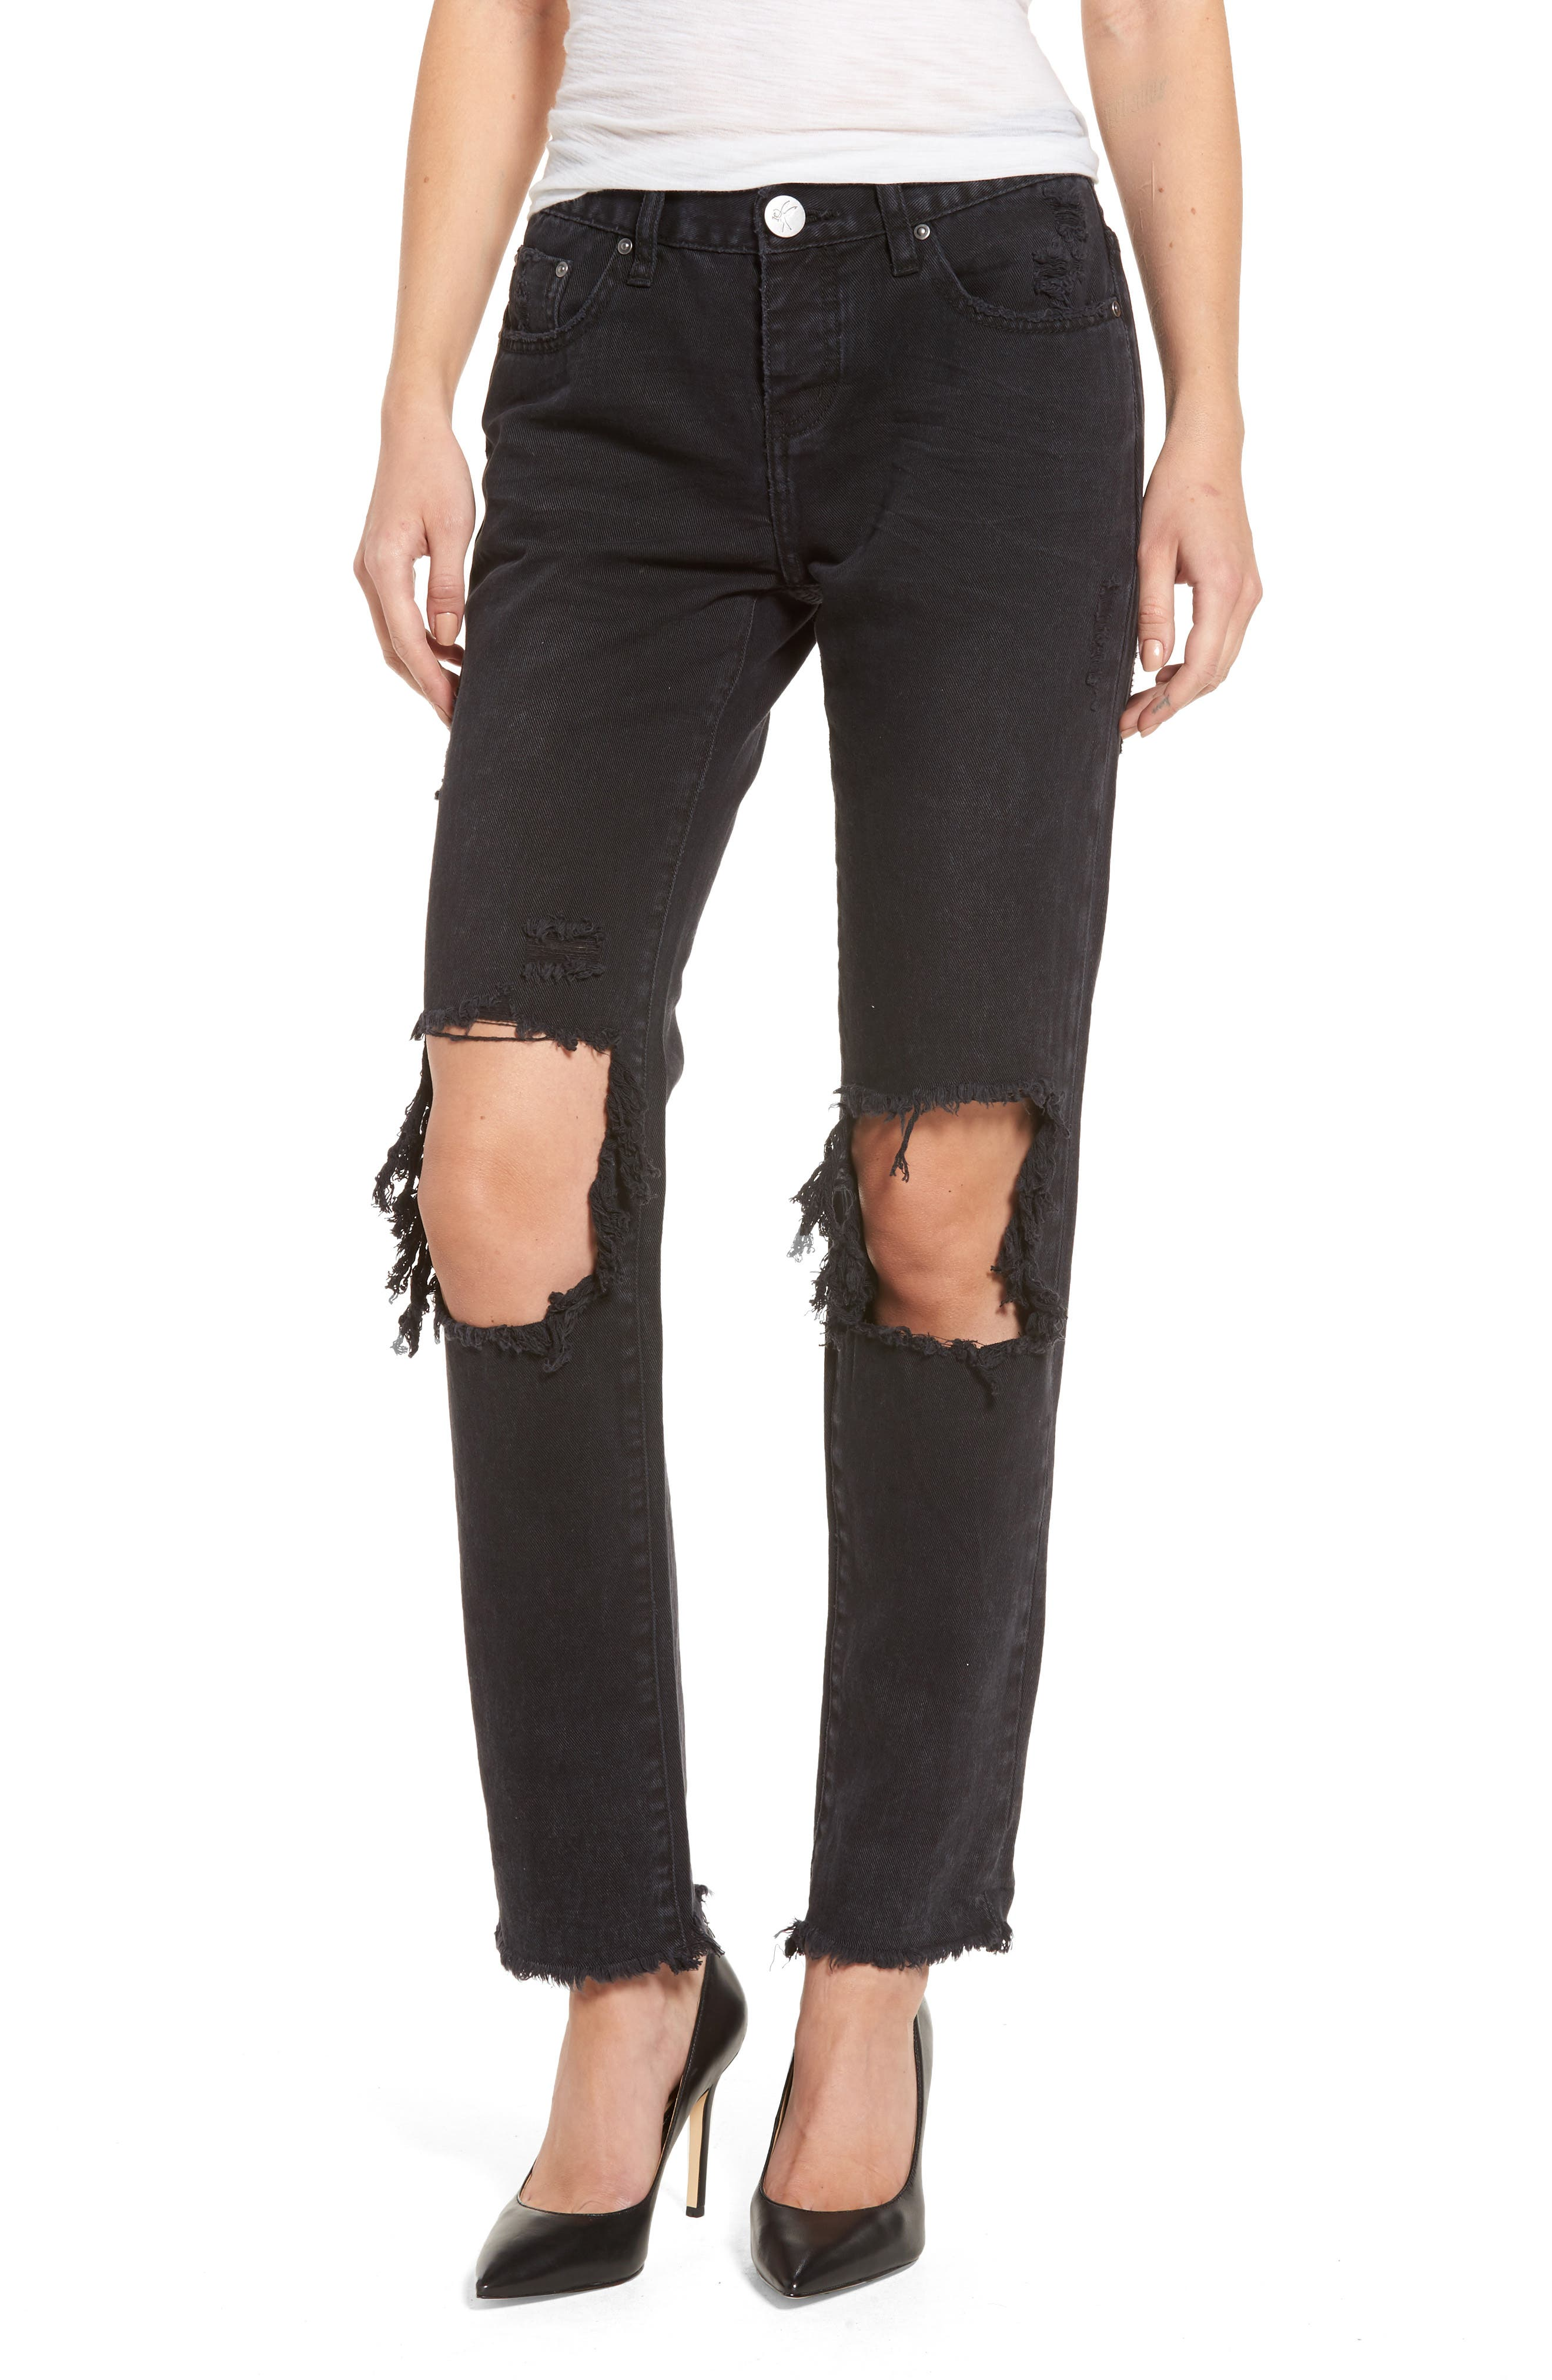 One Teaspoon Awesome Baggies Boyfriend Jeans (Black Anchor)